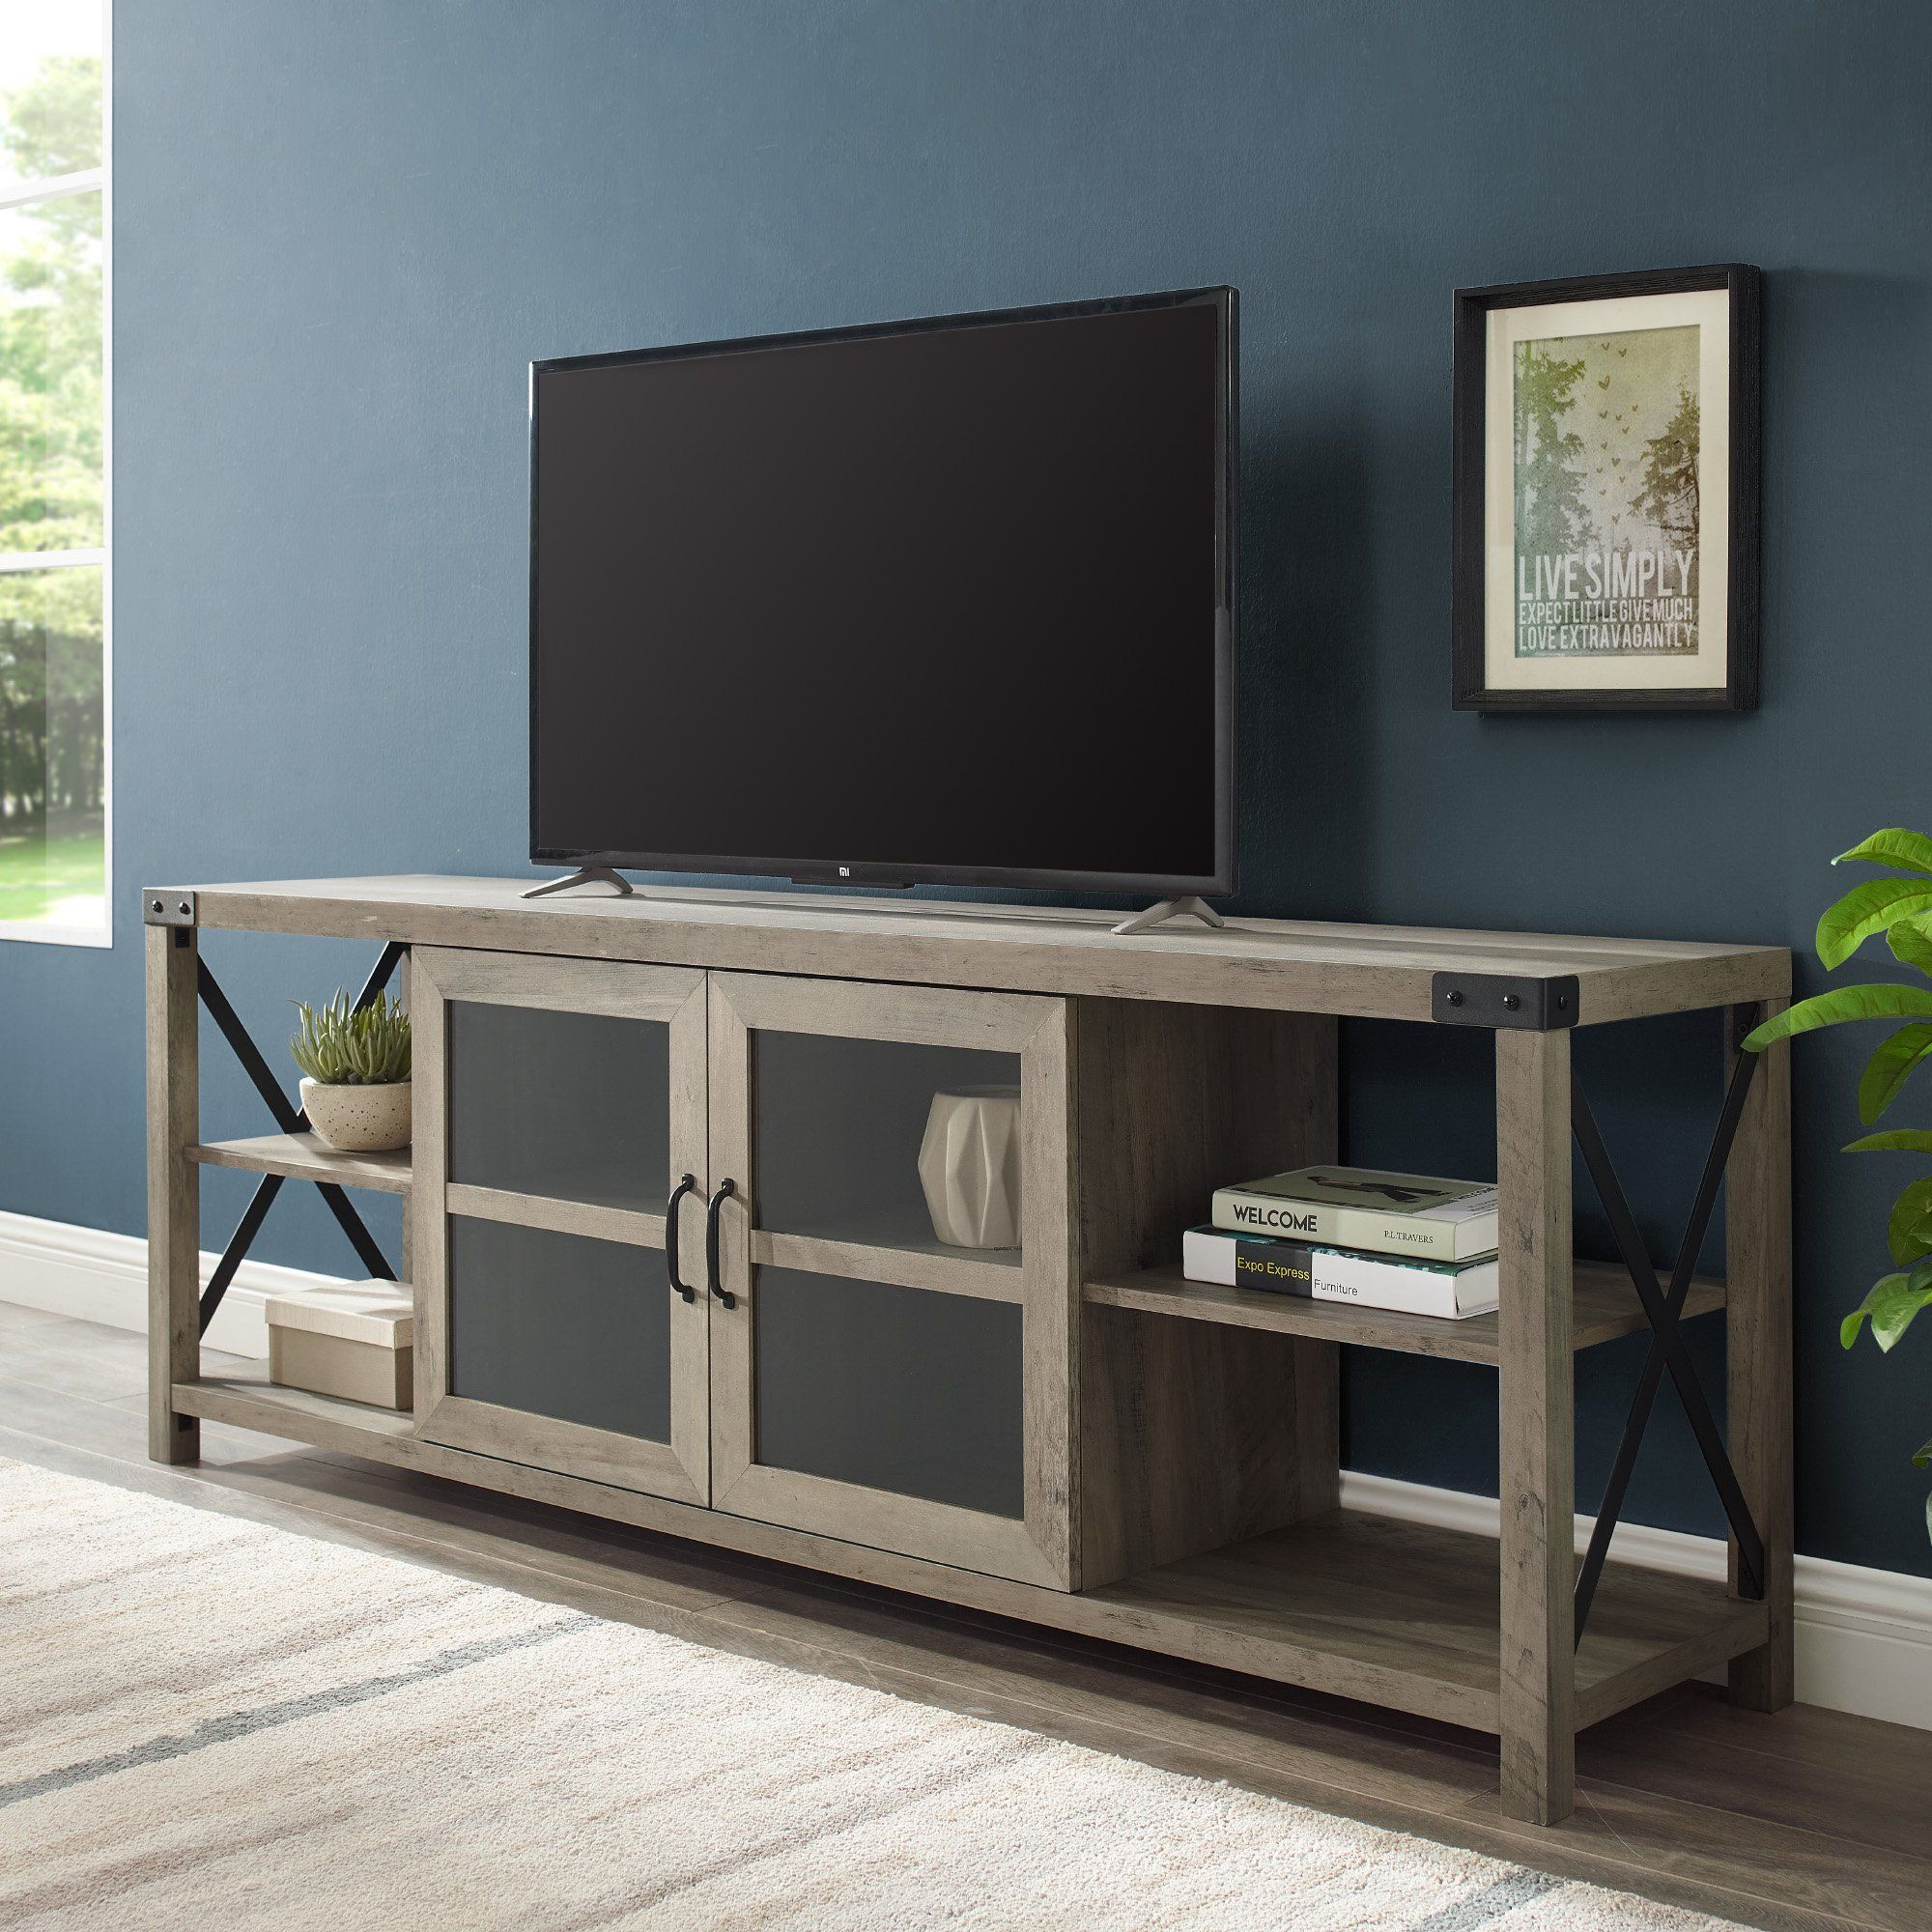 Woven Paths Farmhouse 2 Door Metal X Tv Stand For Tvs Up To 80 Grey Wash Walmart Com Living Room Tv Stand Farmhouse Tv Stand Tv Stand For 75 Inch Tv